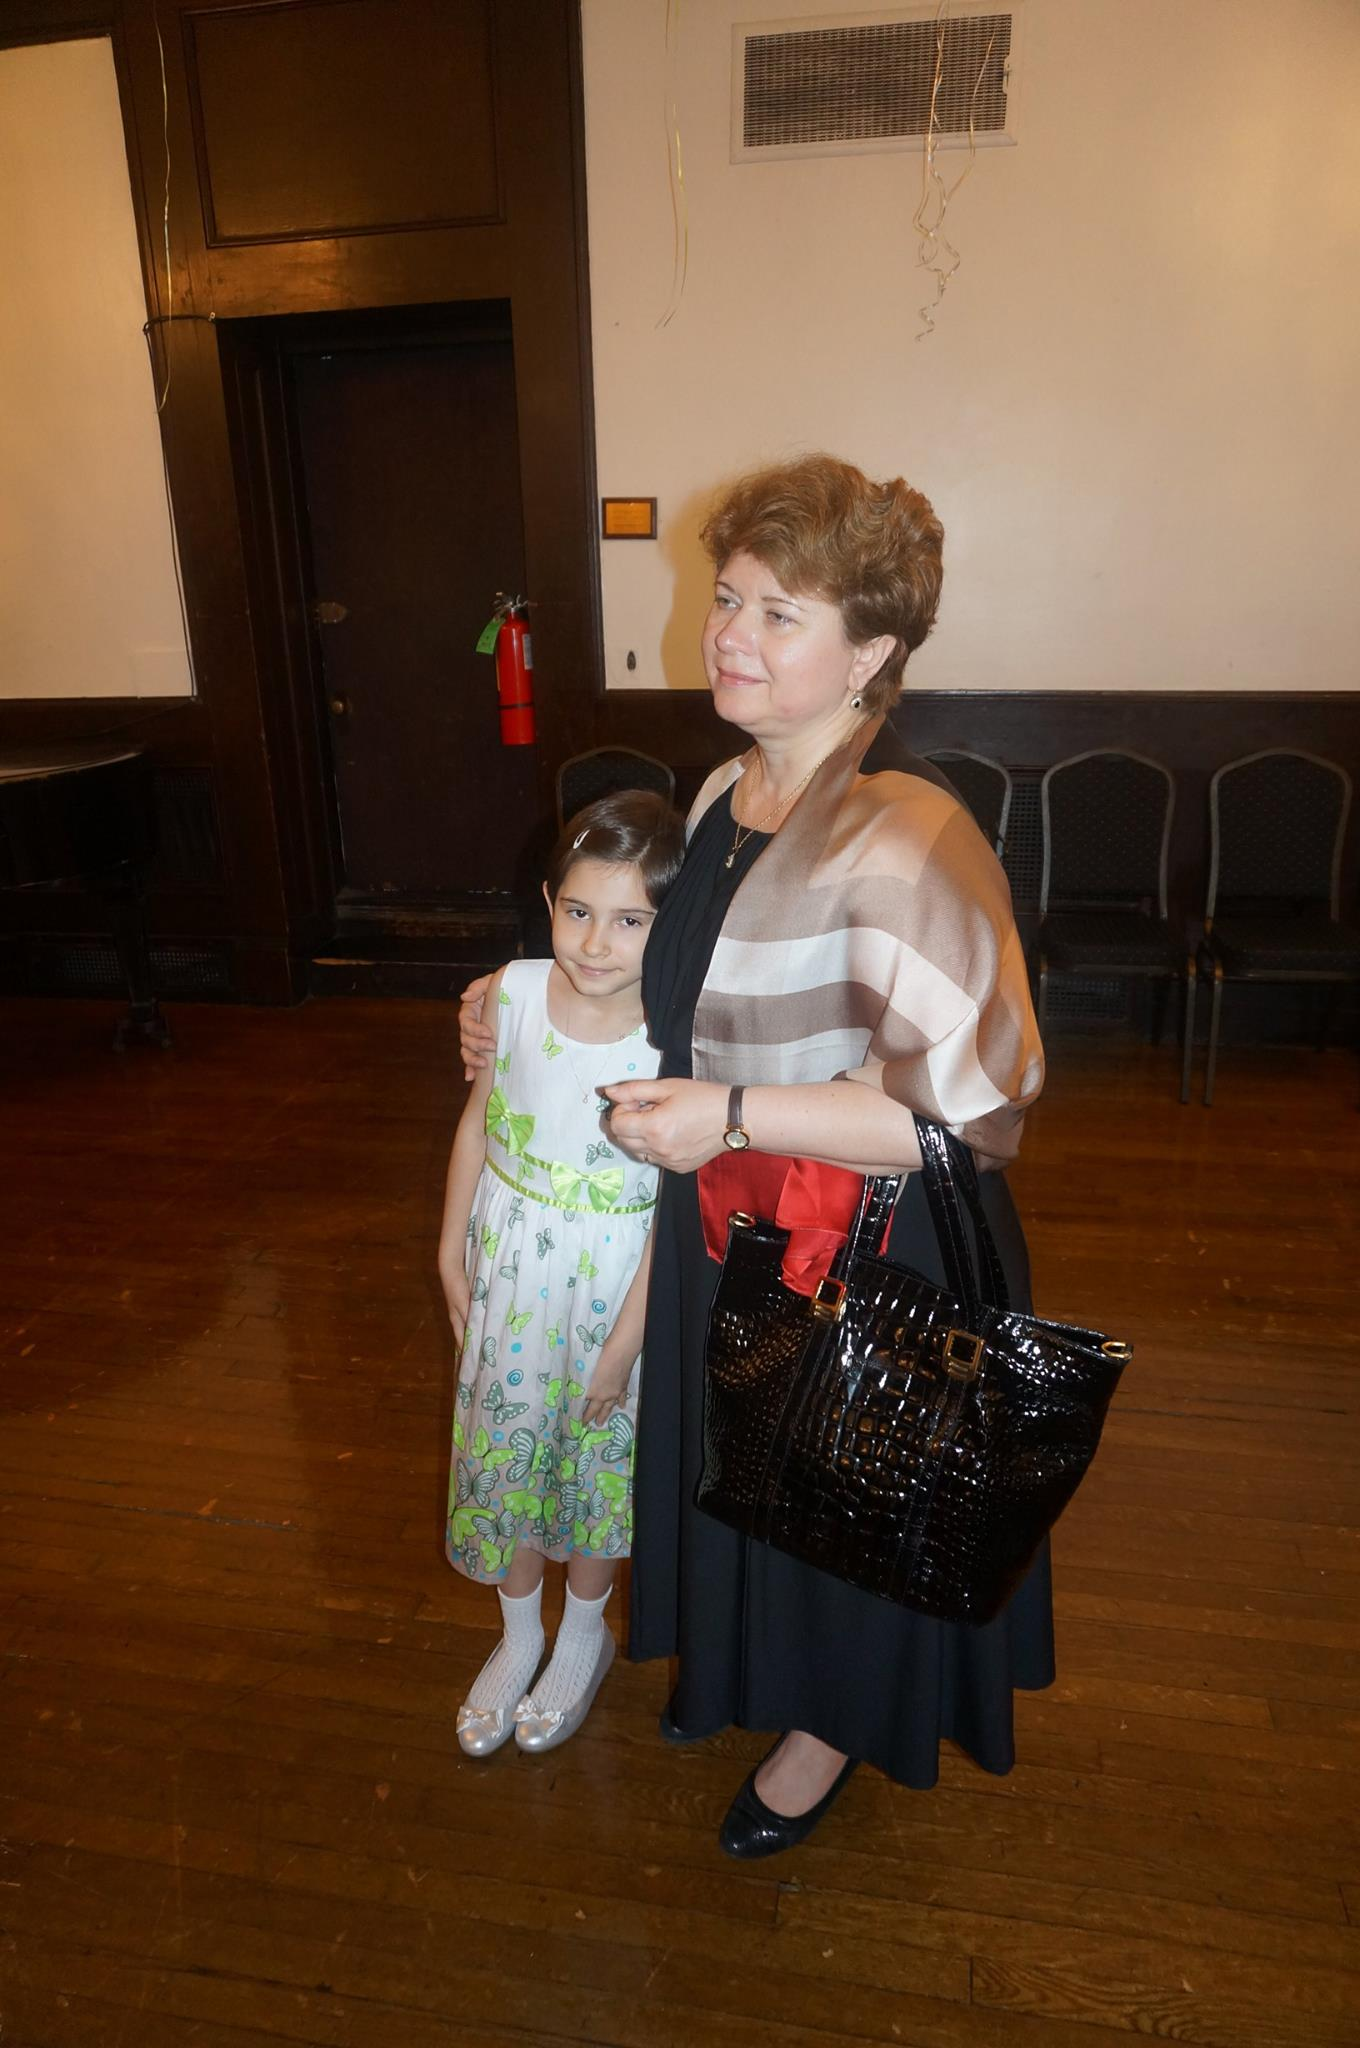 The Consul General of Romania in New York, Dr. Ioana Gabriela Costache and her daughter Carla